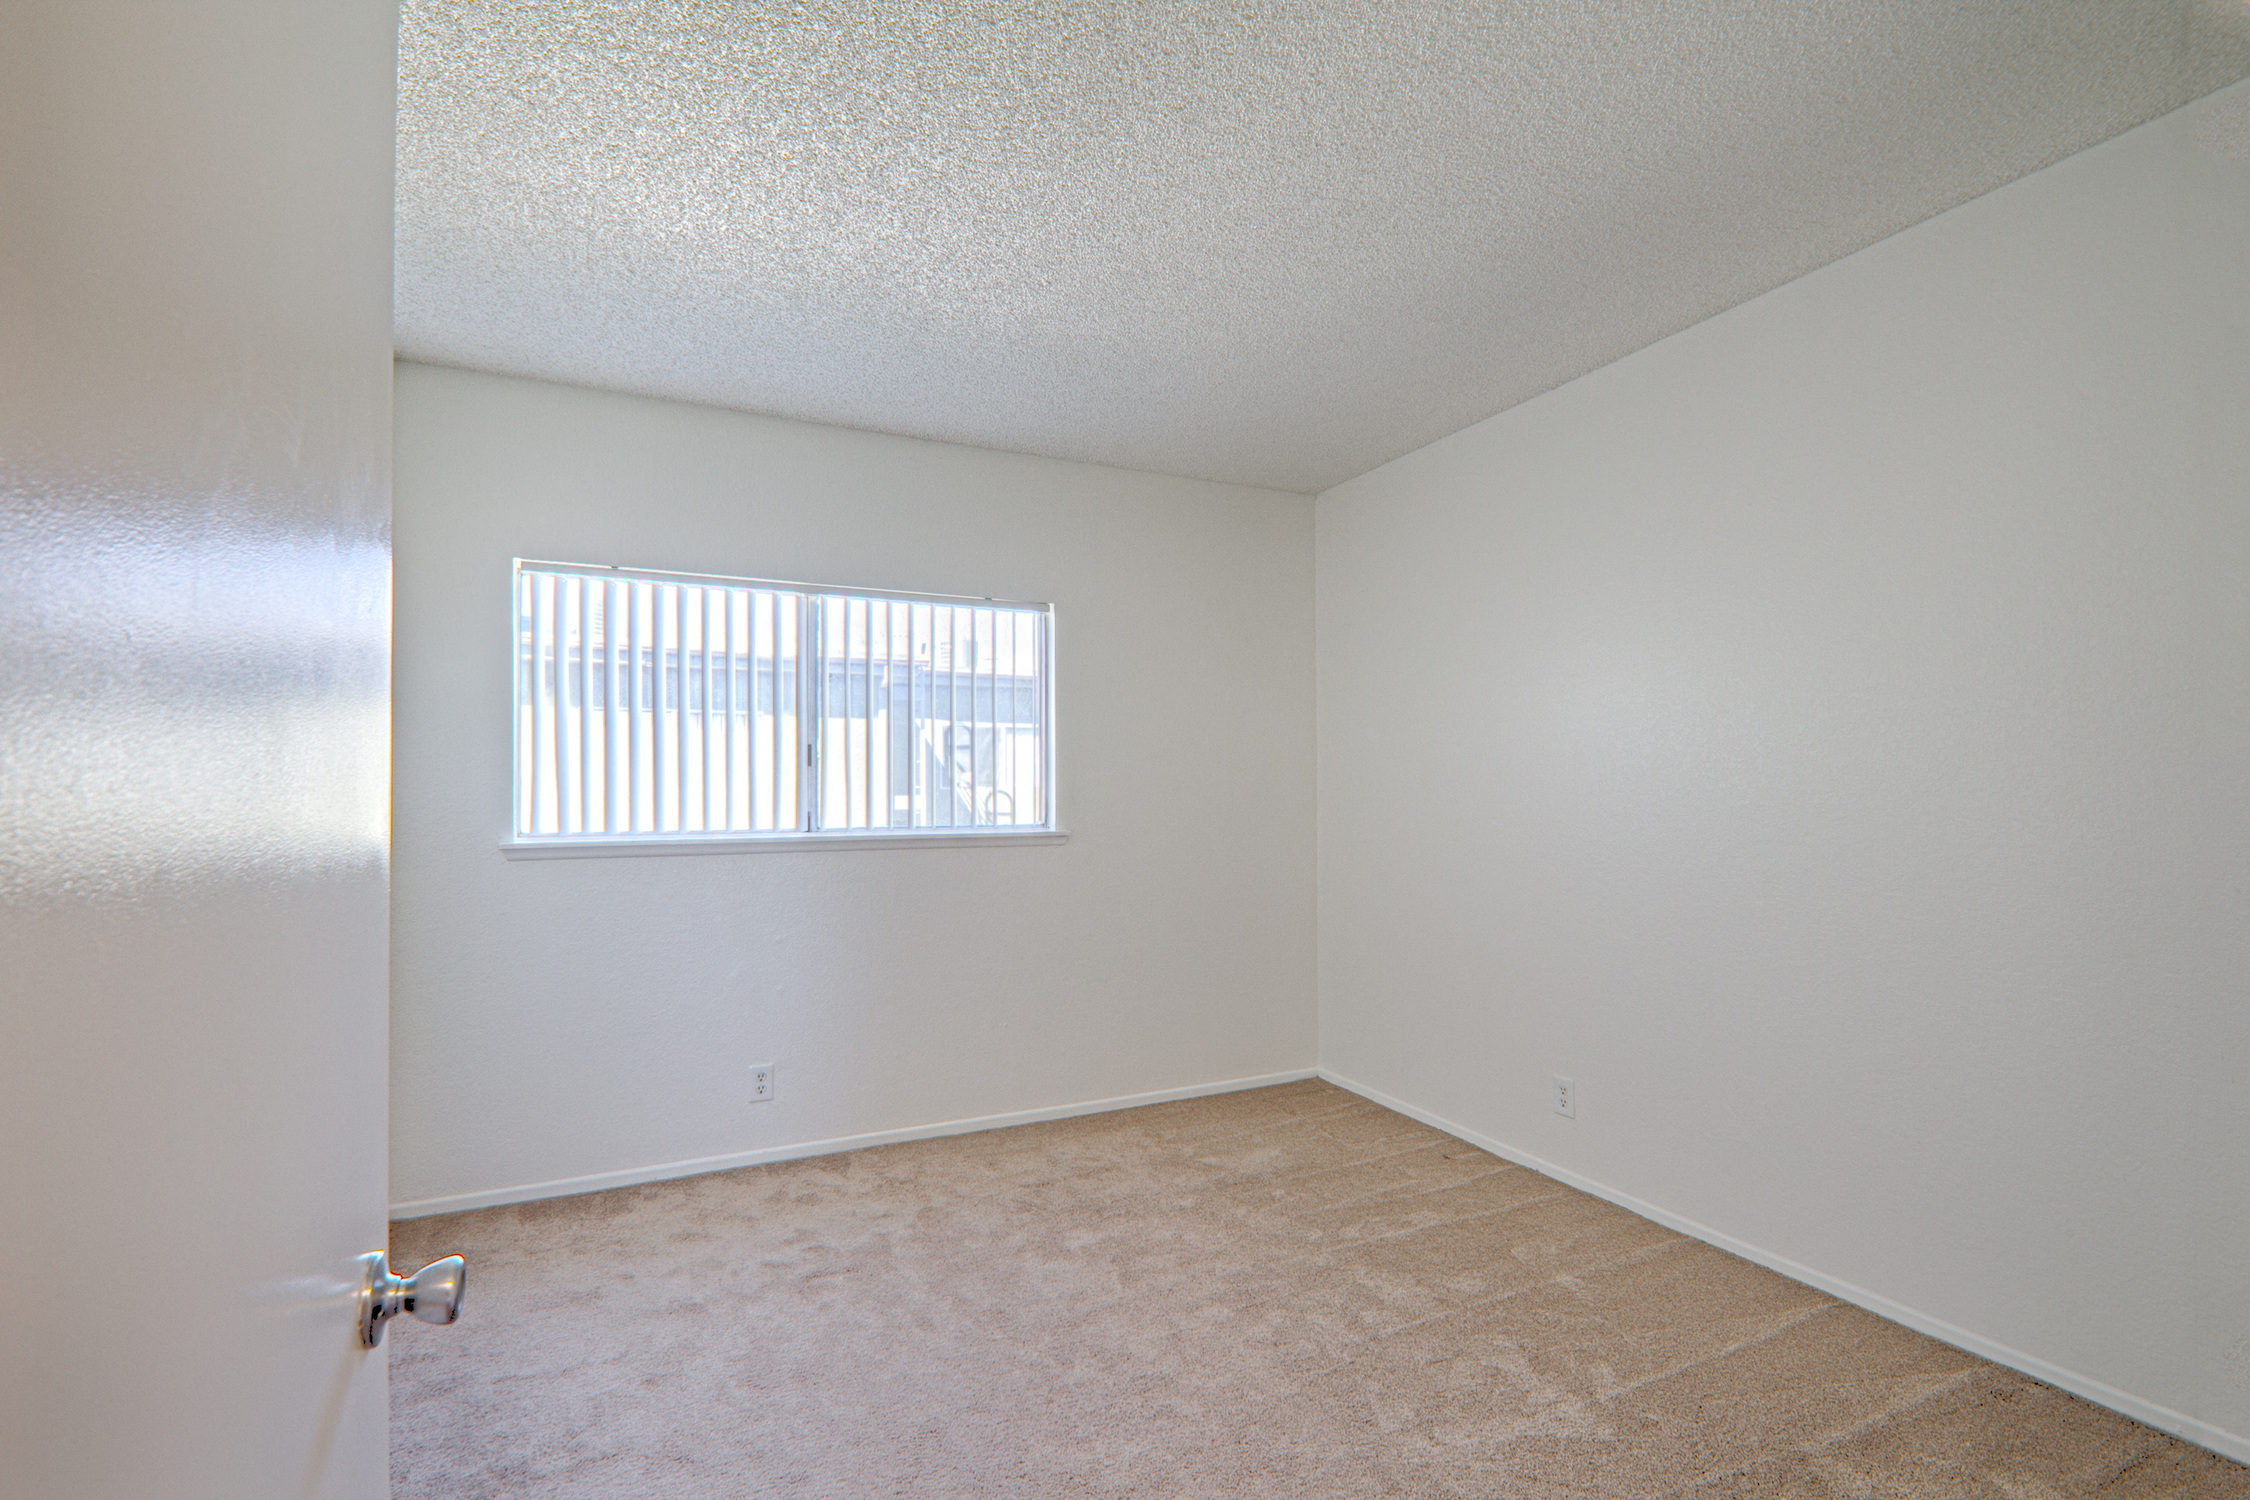 Well-Lighted Bedroom at Woodlands West Townhomes, Lancaster, California